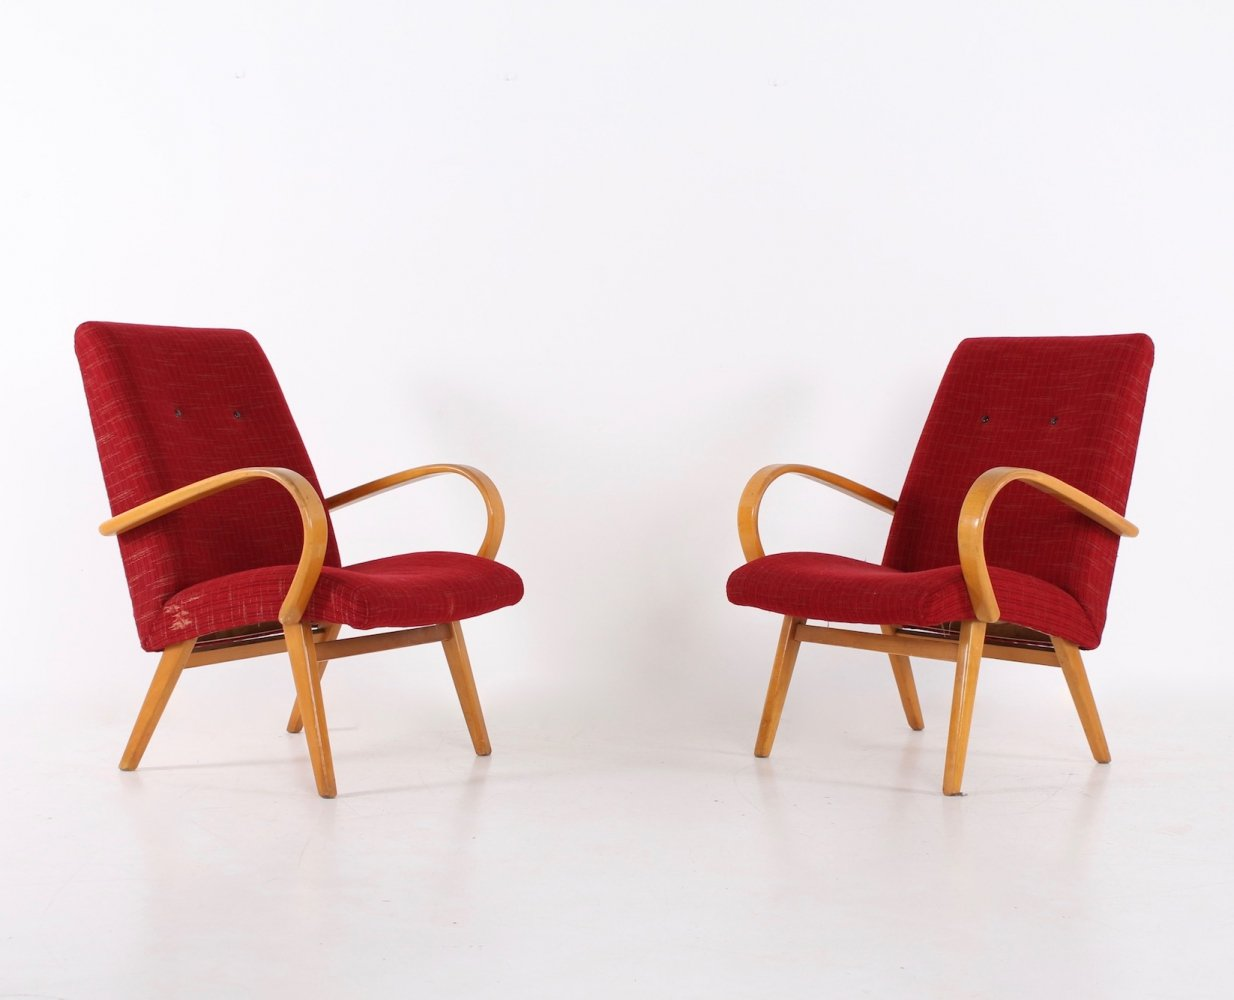 Pair of red armchairs, 1950